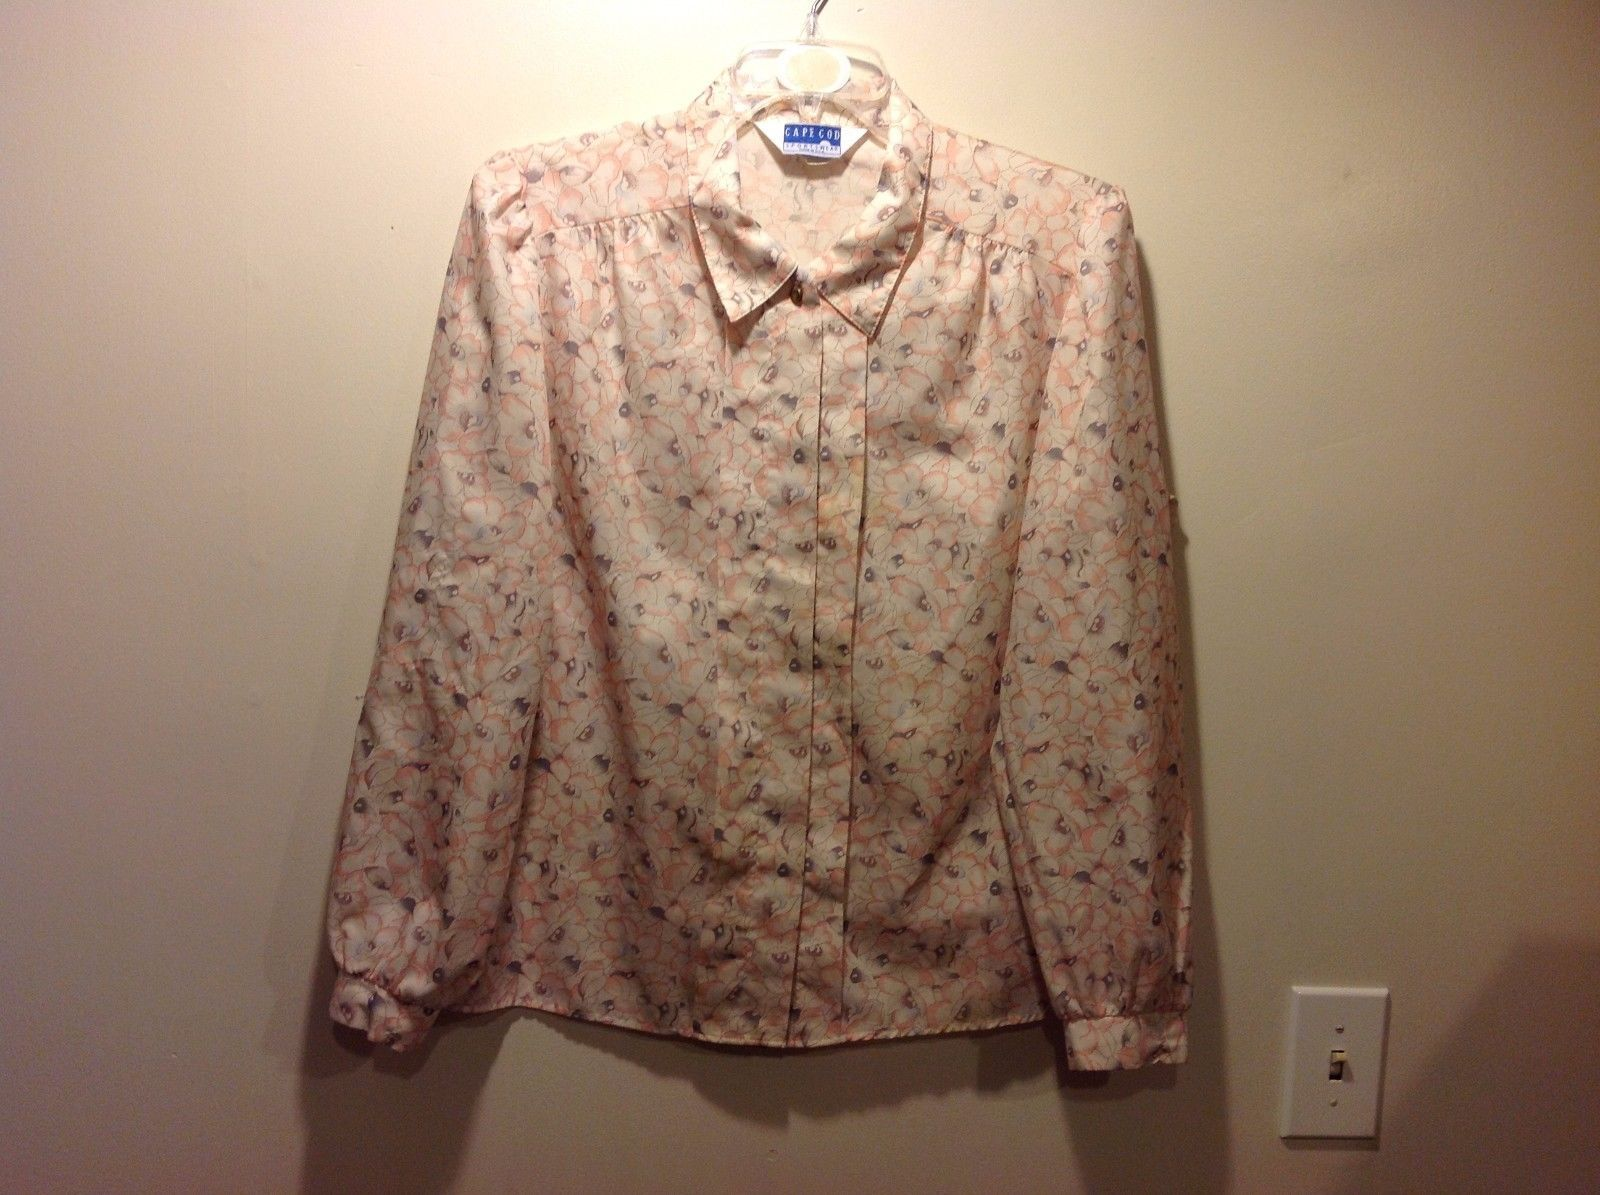 Cape Cod Ladies Floral Patterned Pastel Colored Button Up Blouse Sz S